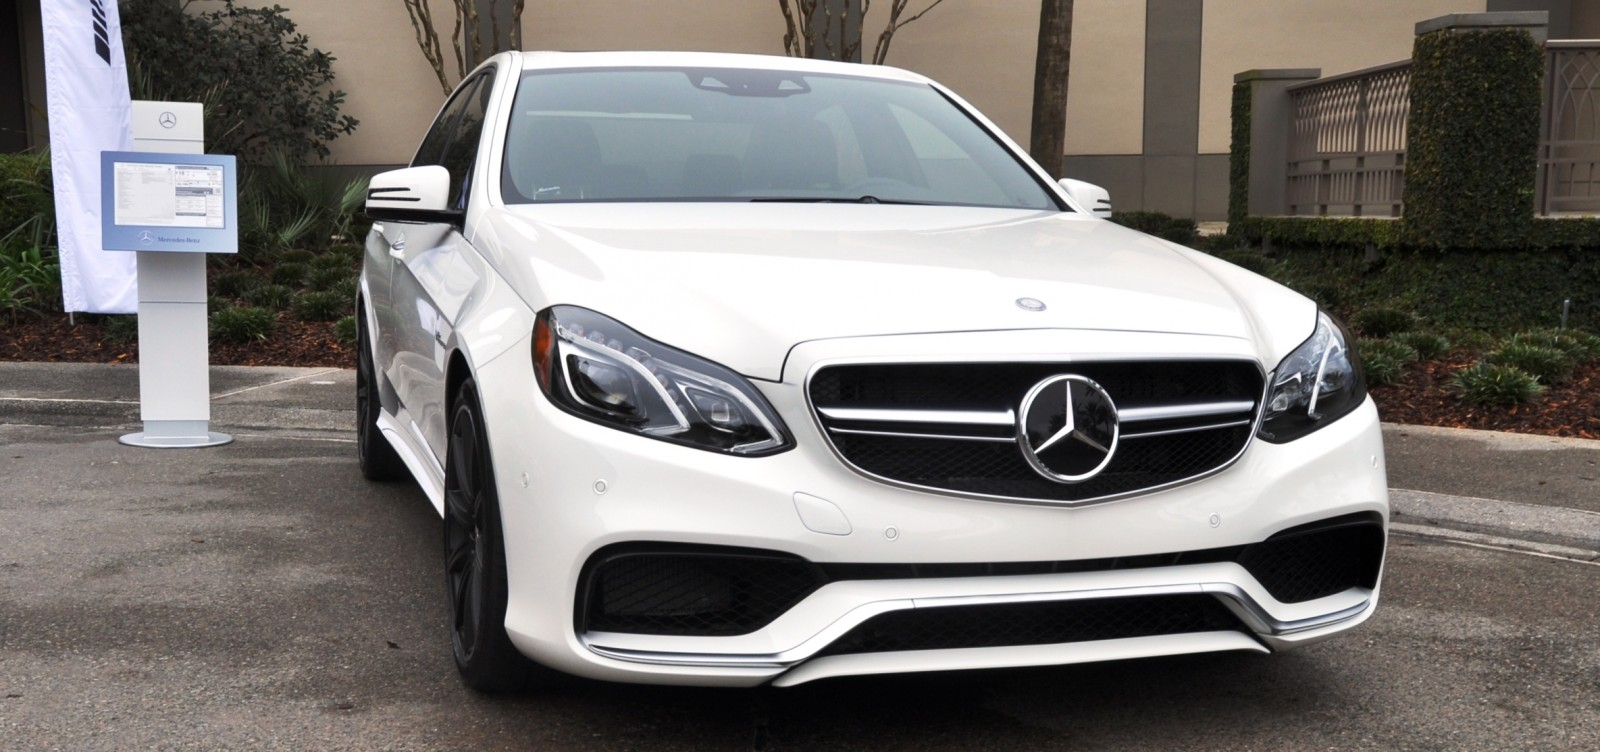 White dynamite 2014 mercedes benz e63 amg 4matic s model for Mercedes benz e63 s amg